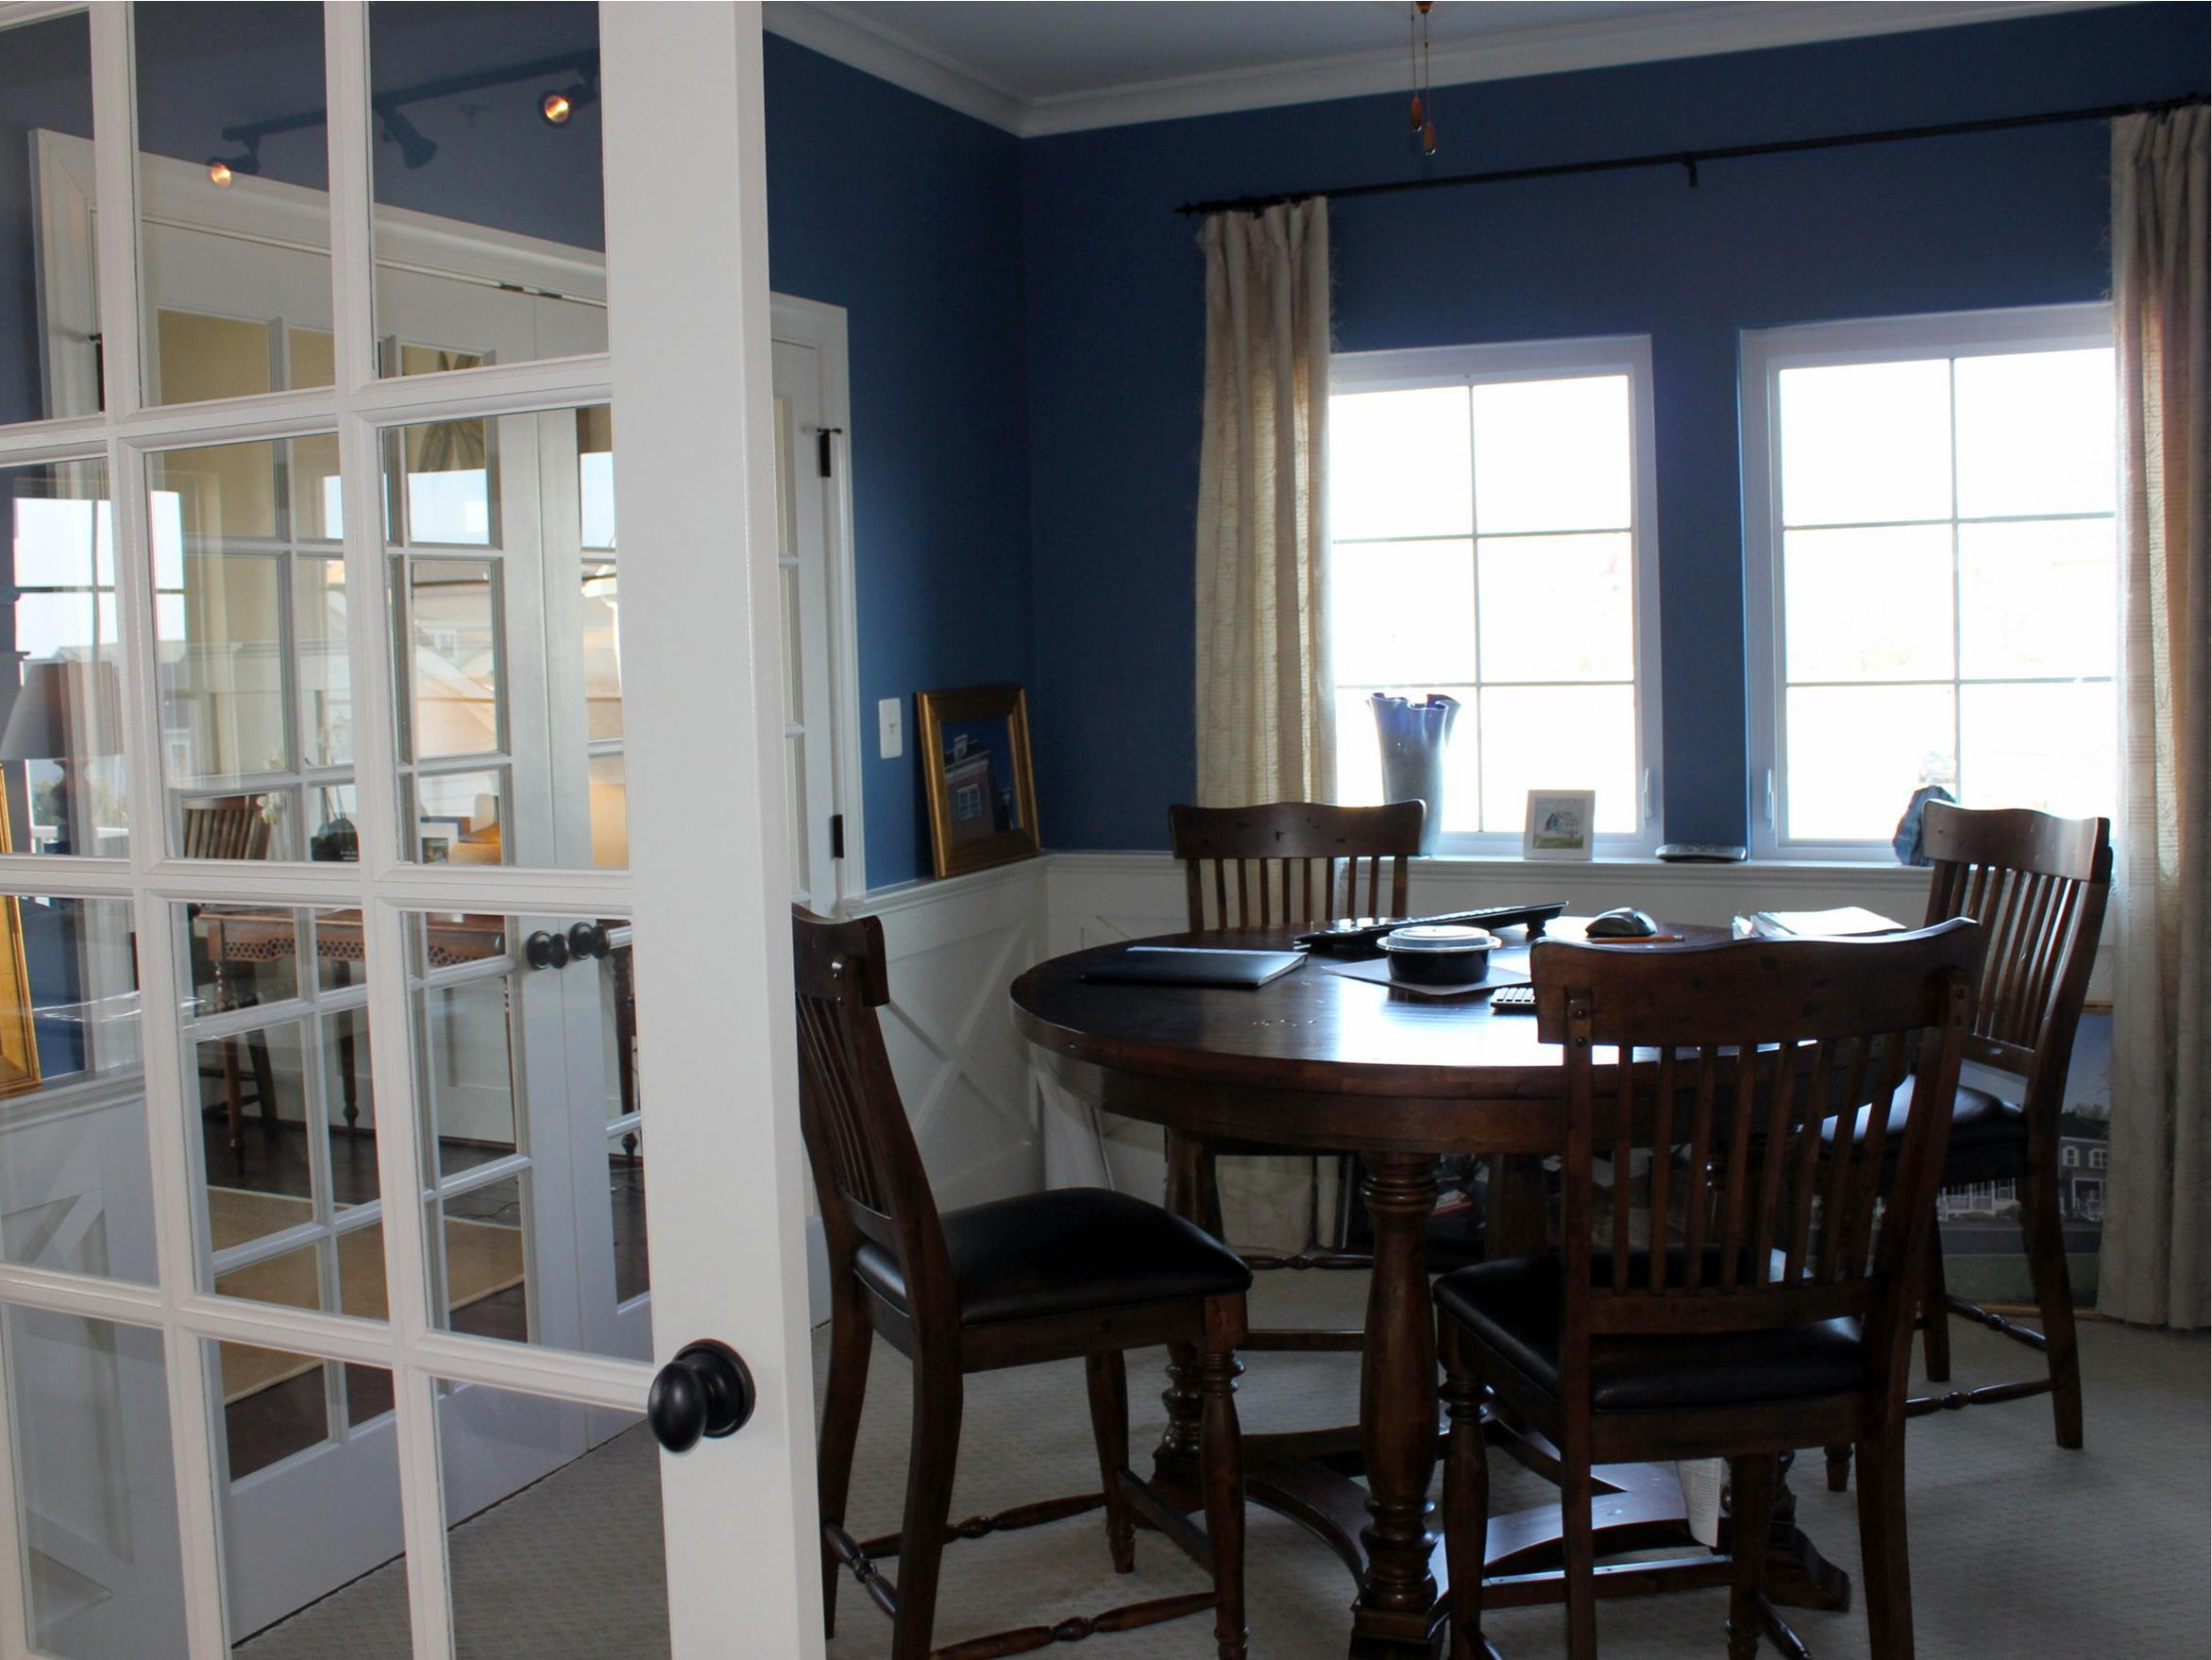 Kitchen featured in the Kitty Hawk Legacy By Covell Communities in Eastern Shore, MD